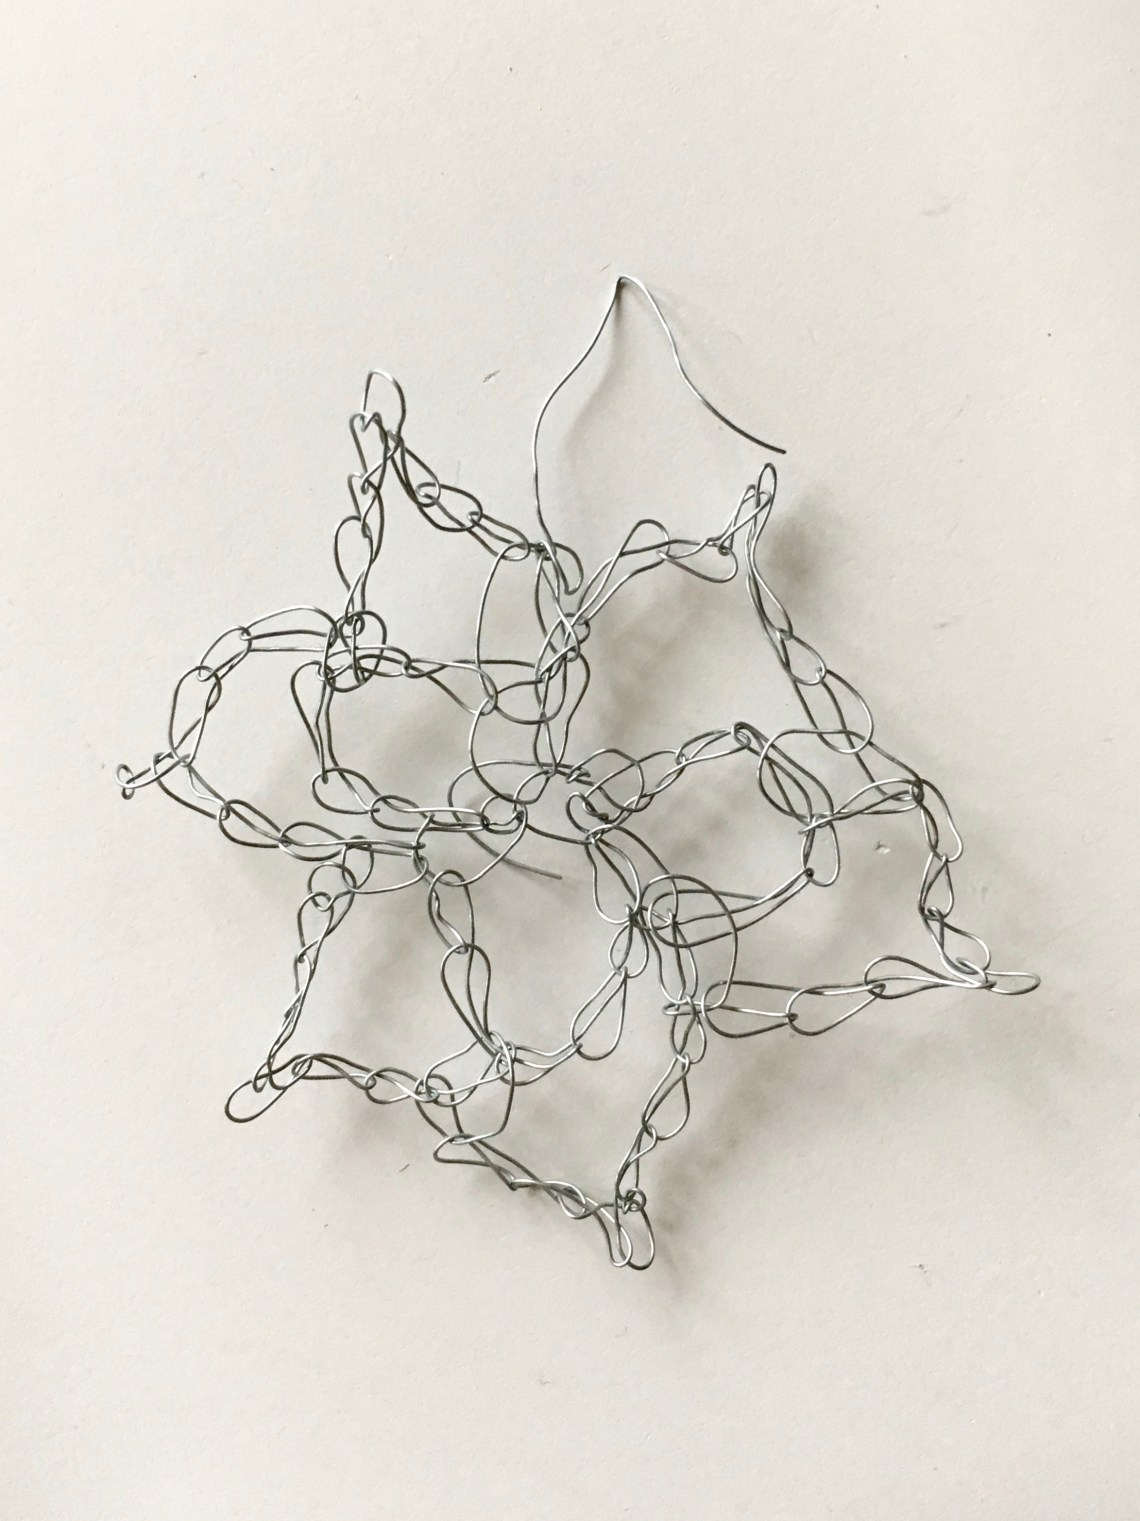 A simple crochet snowflake made of wire